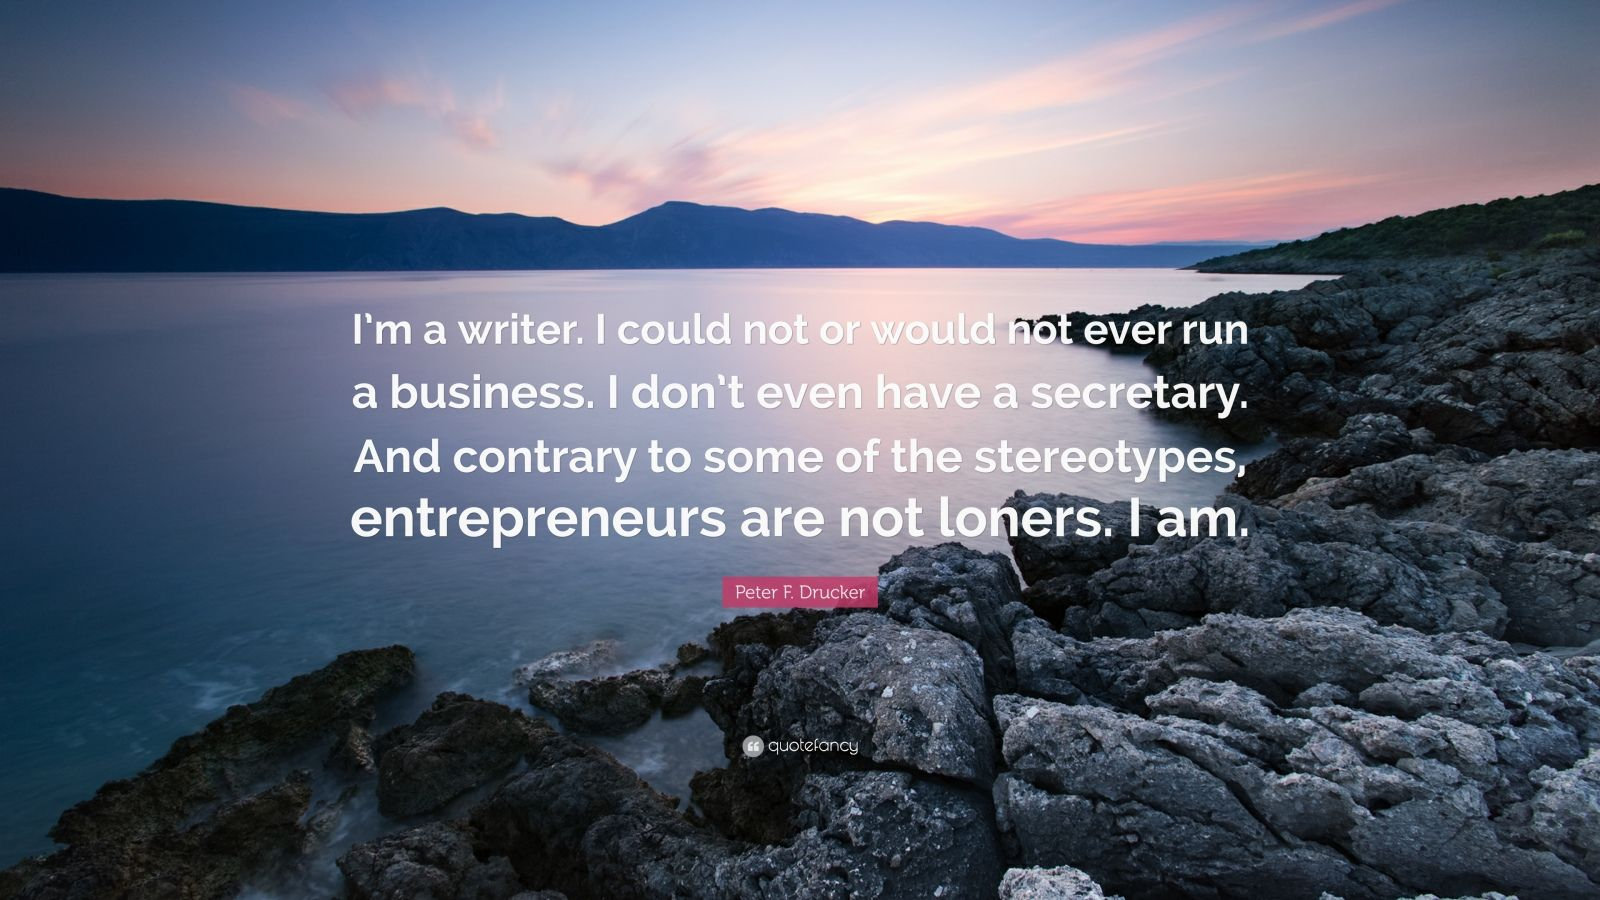 """Peter F. Drucker Quote: """"I'm a writer. I could not or would not ever run a business. I don't even have a secretary. And contrary to some of the stereotypes, entrepreneurs are not loners. I am."""""""